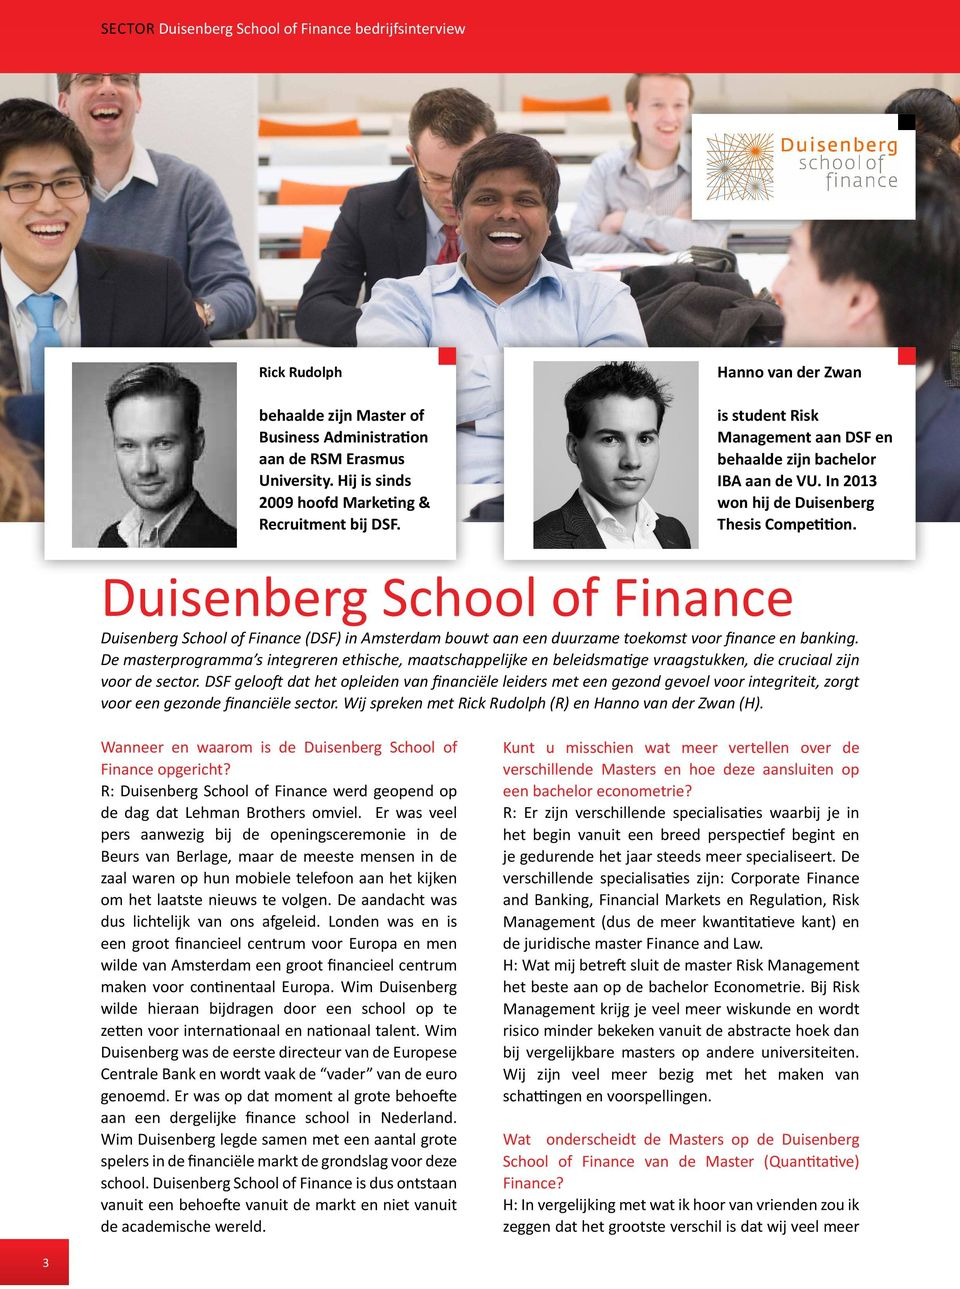 In 2013 won hij de Duisenberg Thesis Competition. Duisenberg School of Finance Duisenberg School of Finance (DSF) in Amsterdam bouwt aan een duurzame toekomst voor finance en banking.